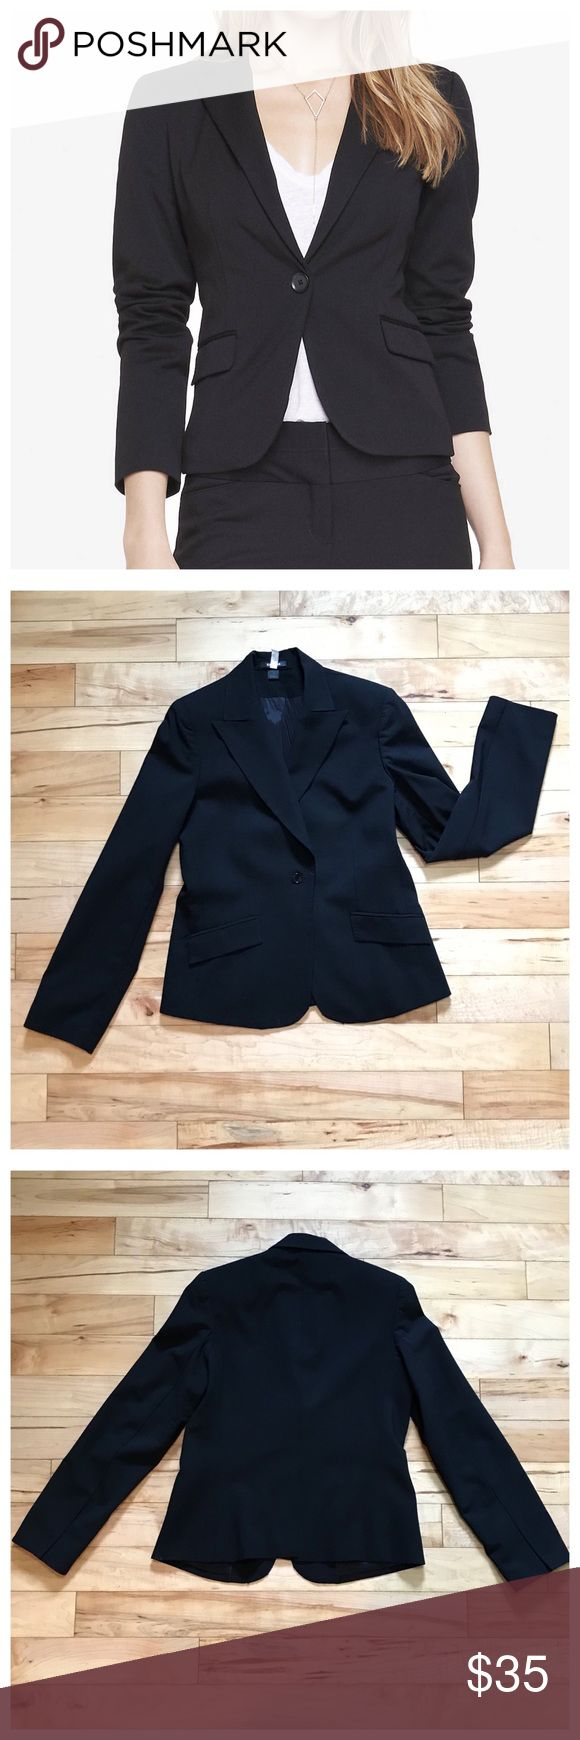 Express lined blazer Express fully lined blazer in traditional black features one button styling & no buttons on the wrist for comfort. Lightly padded shoulders. Looks great with dress pants or more casual with jeans.  Only worn a few times but i can say it's really comfortable, almost like its slightly stretchy.  Size 10  Just back from dry cleaners Express Jackets & Coats Blazers